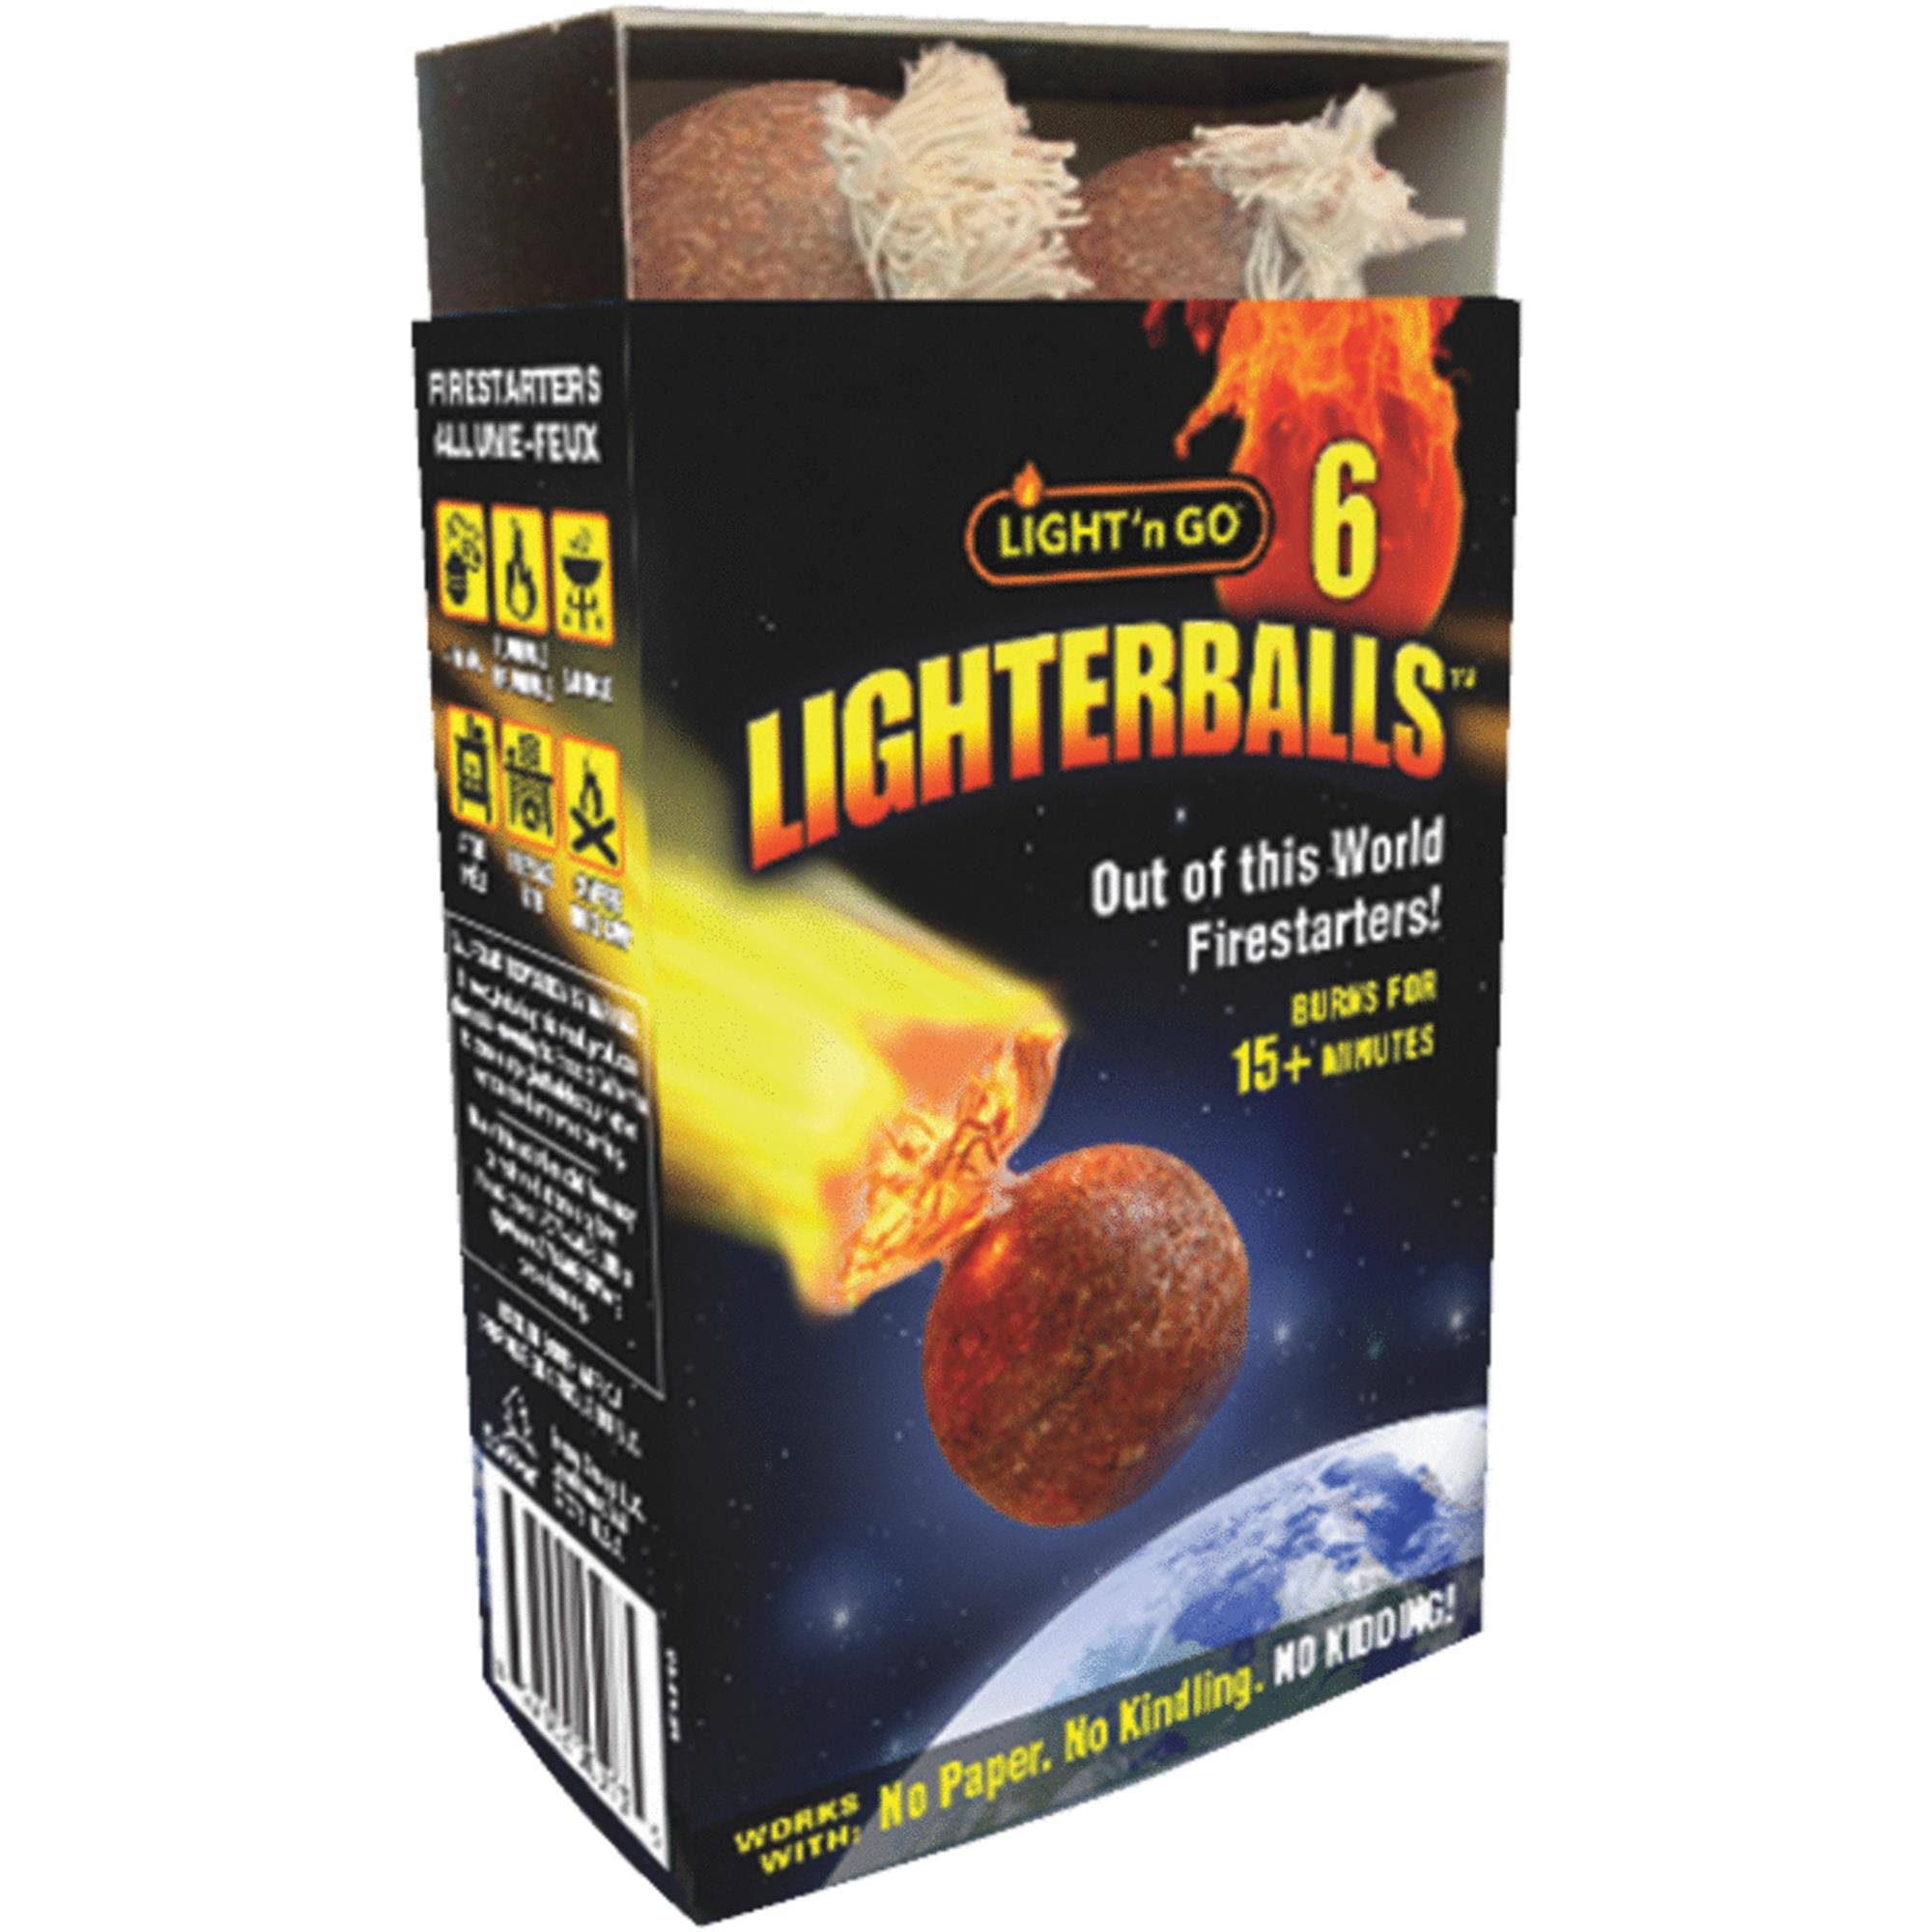 Light'n Go Lighterballs Fire Starter - 6ct